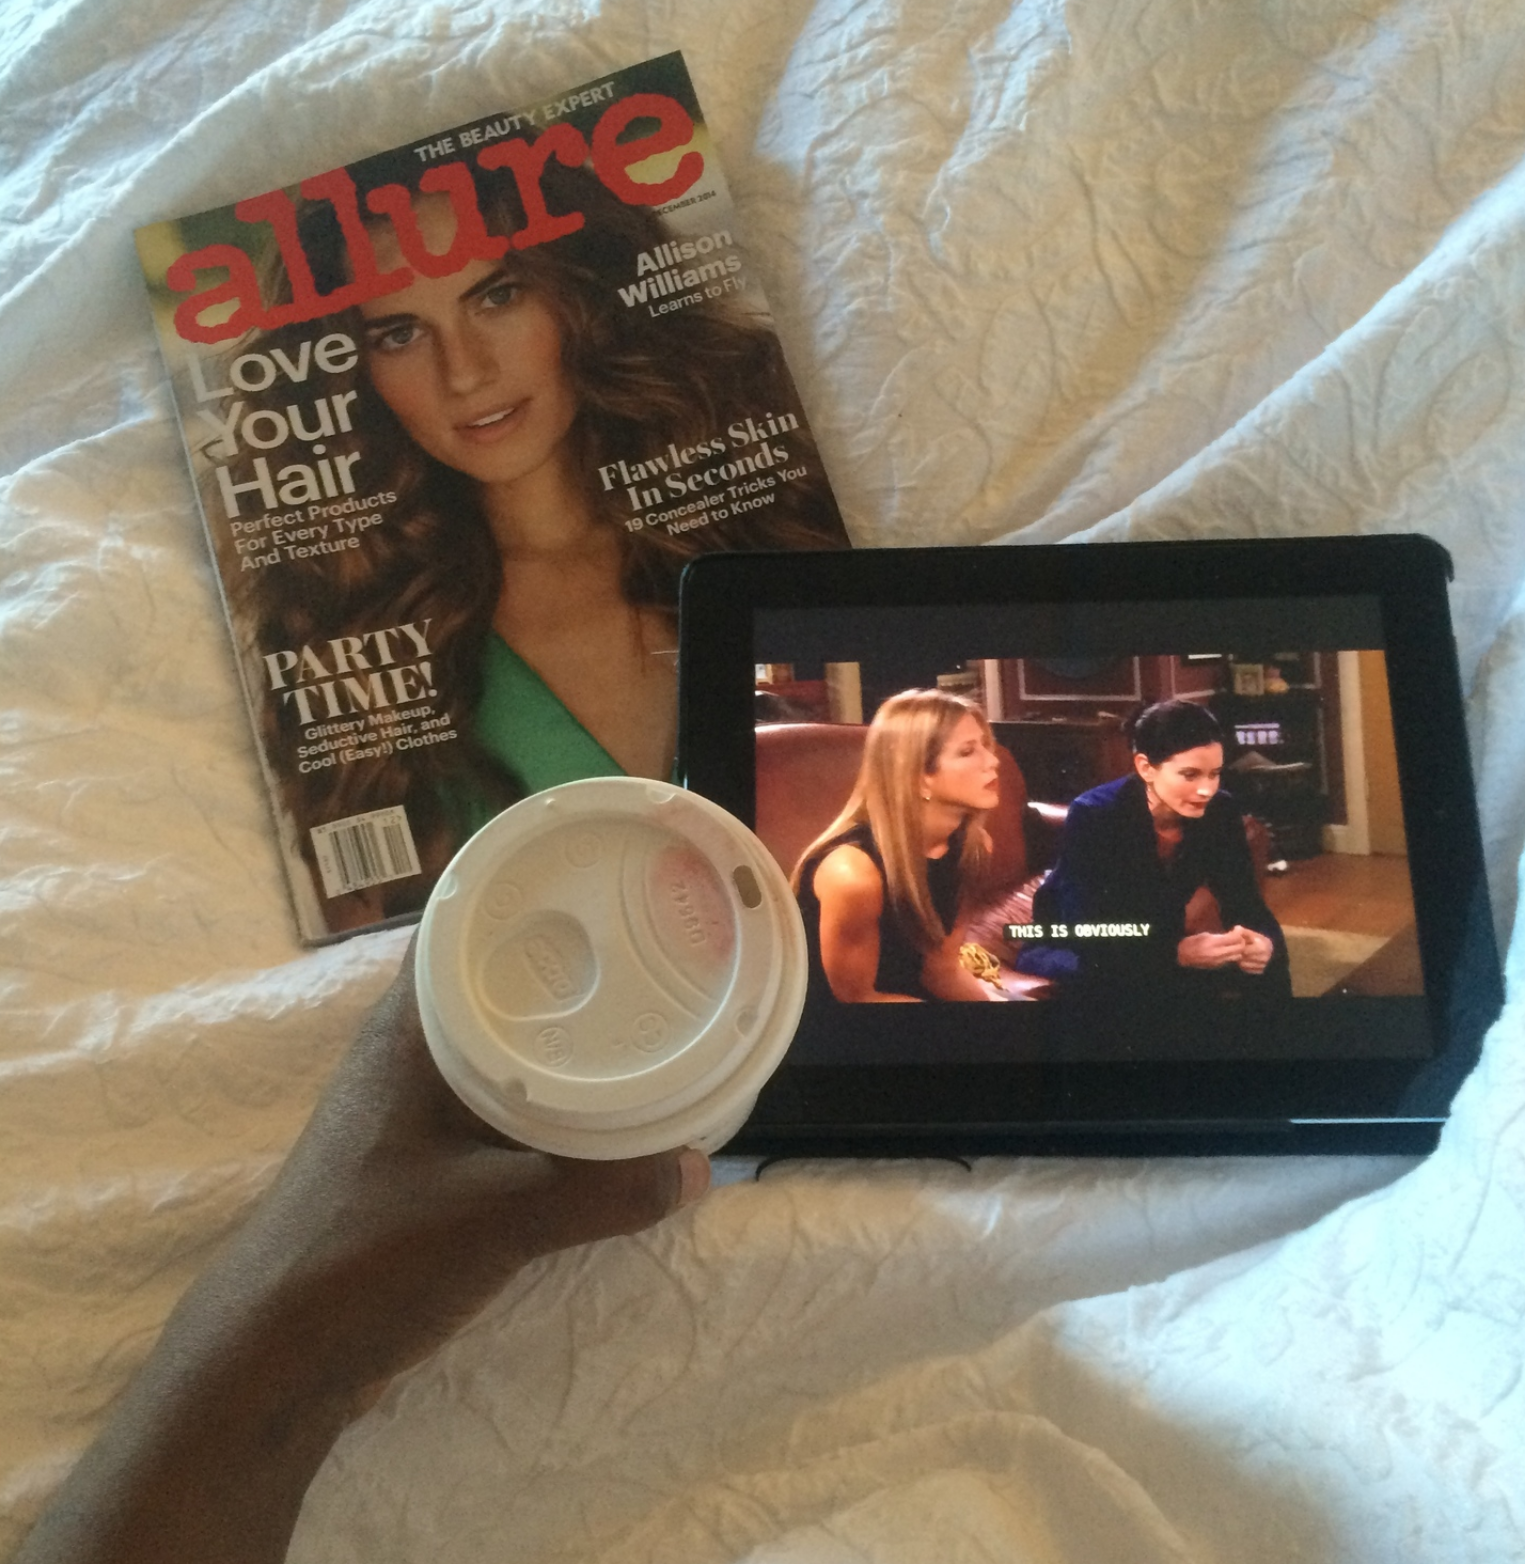 5. Random free weekend watching Friends and sipping Apple Cider